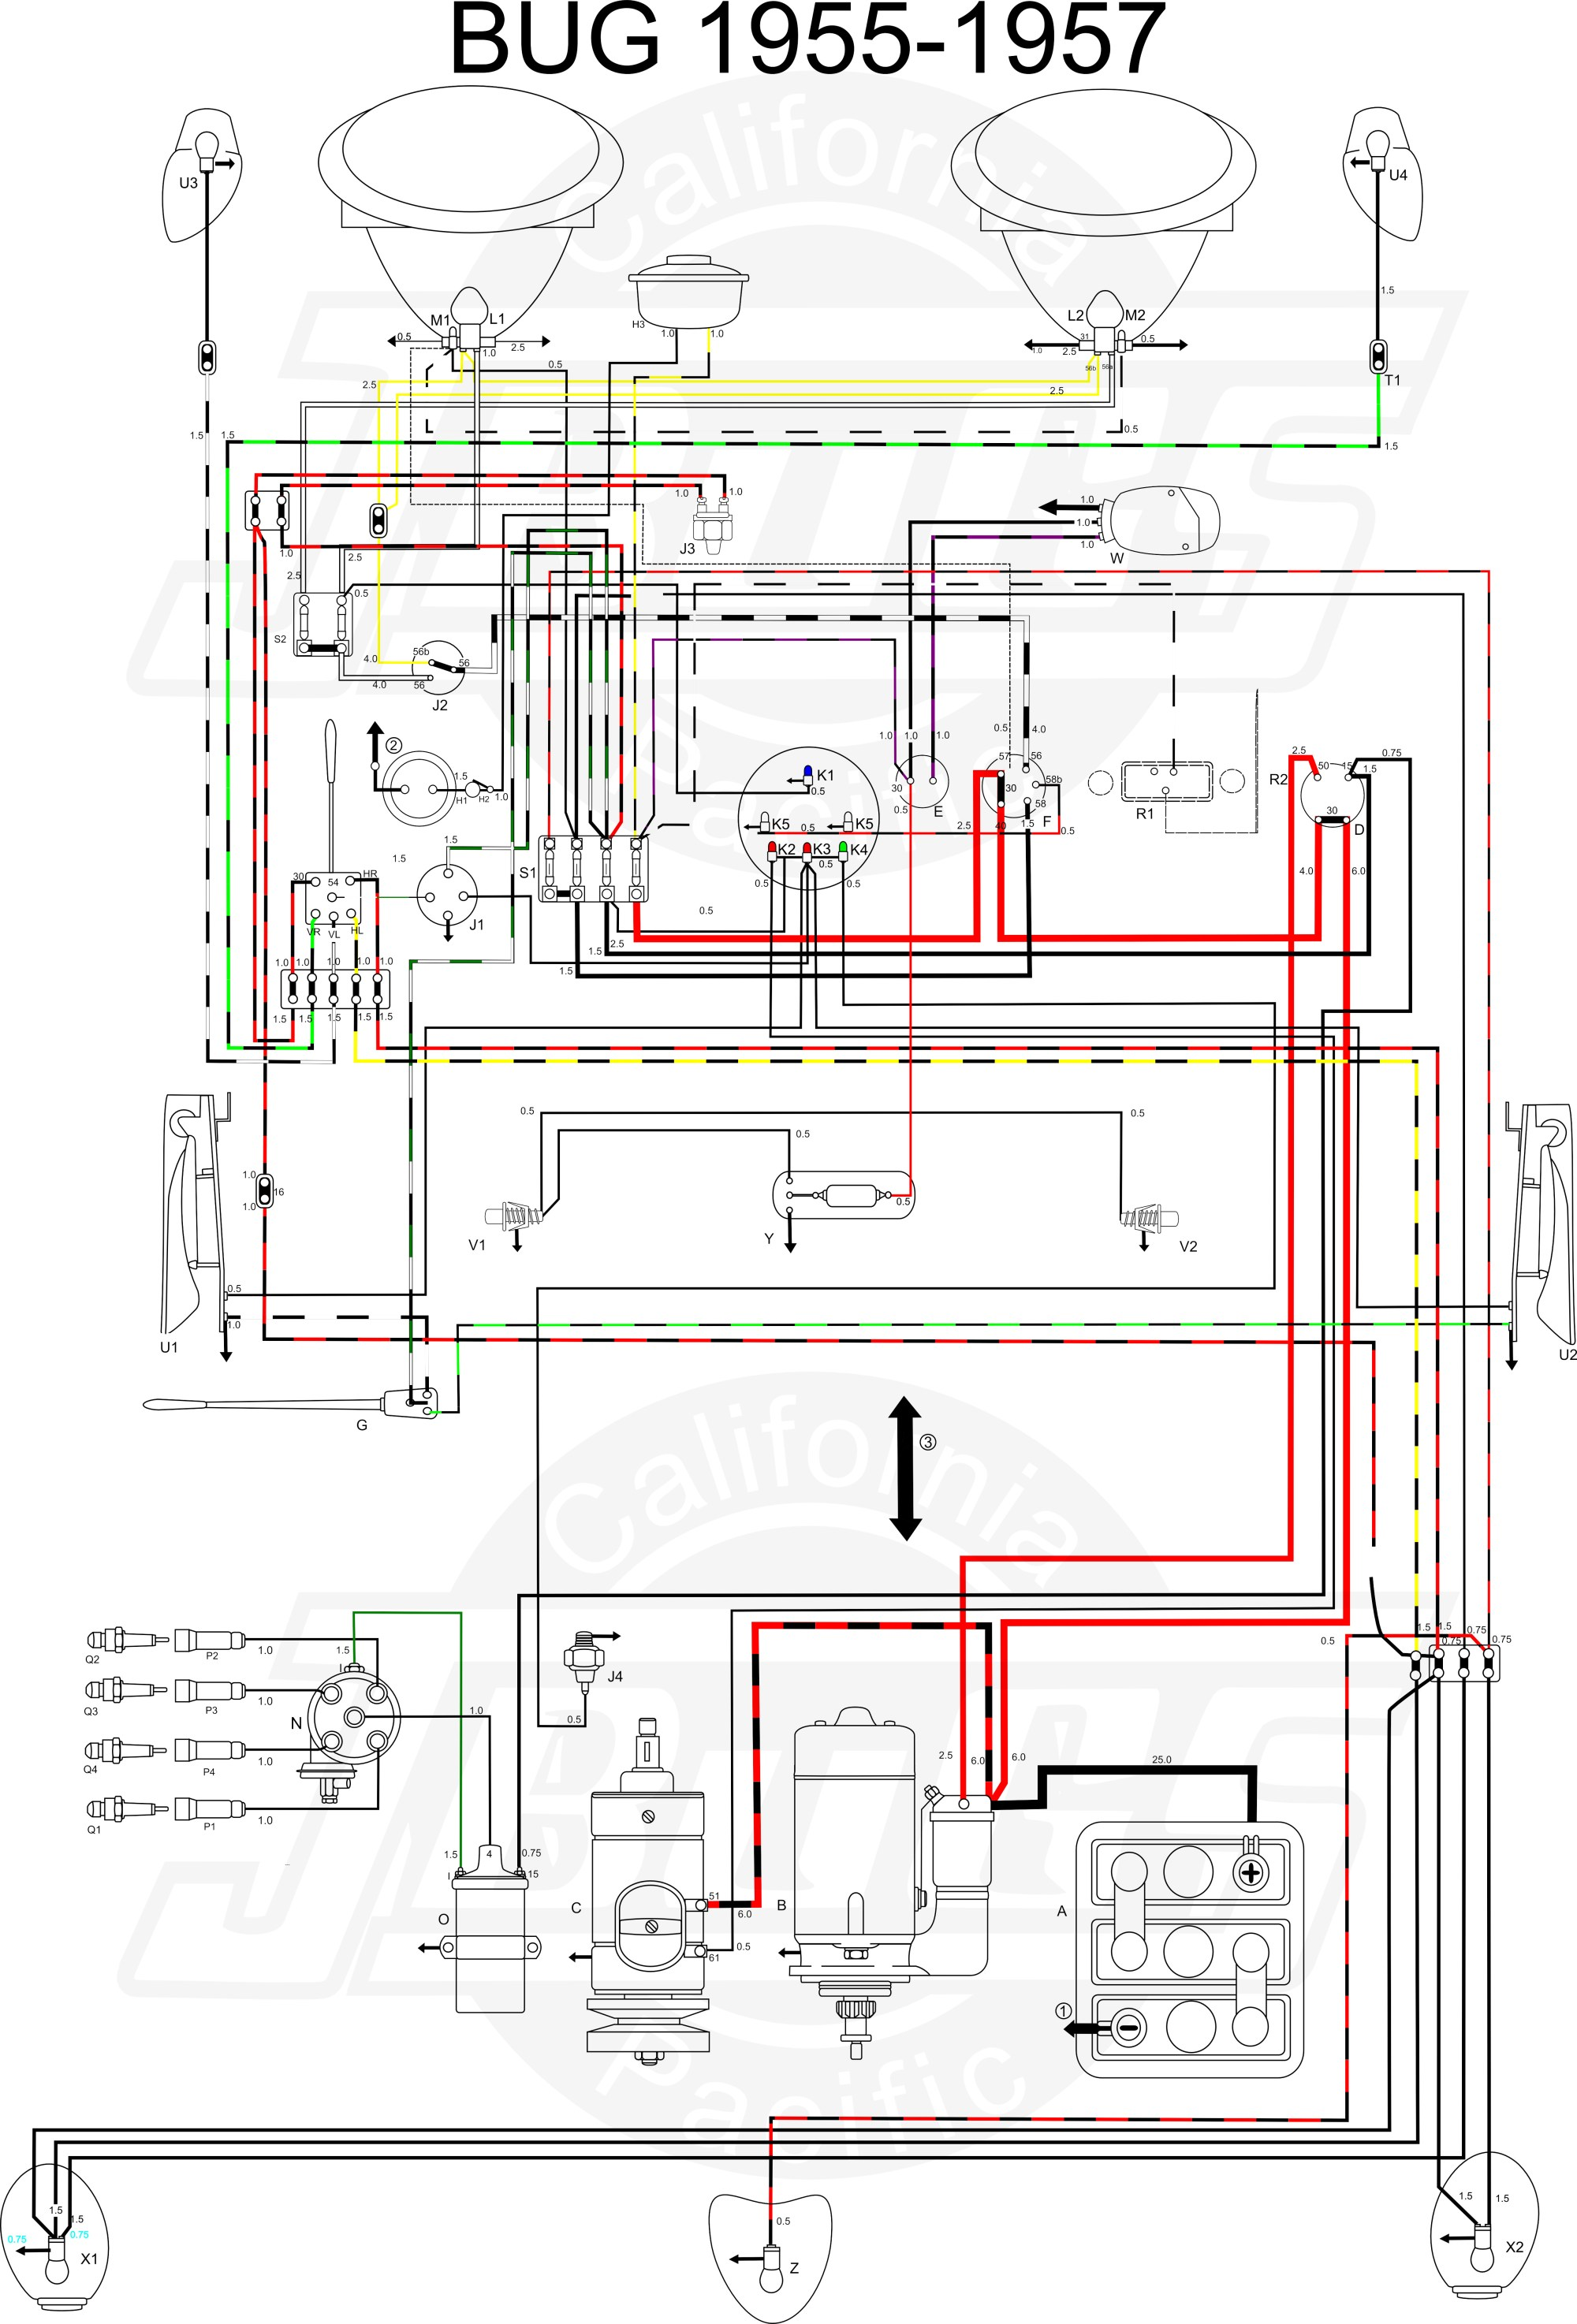 hight resolution of 1972 vw bug wiring harness wiring diagram third level rh 10 12 jacobwinterstein com vw thing engine wiring vw thing engine wiring